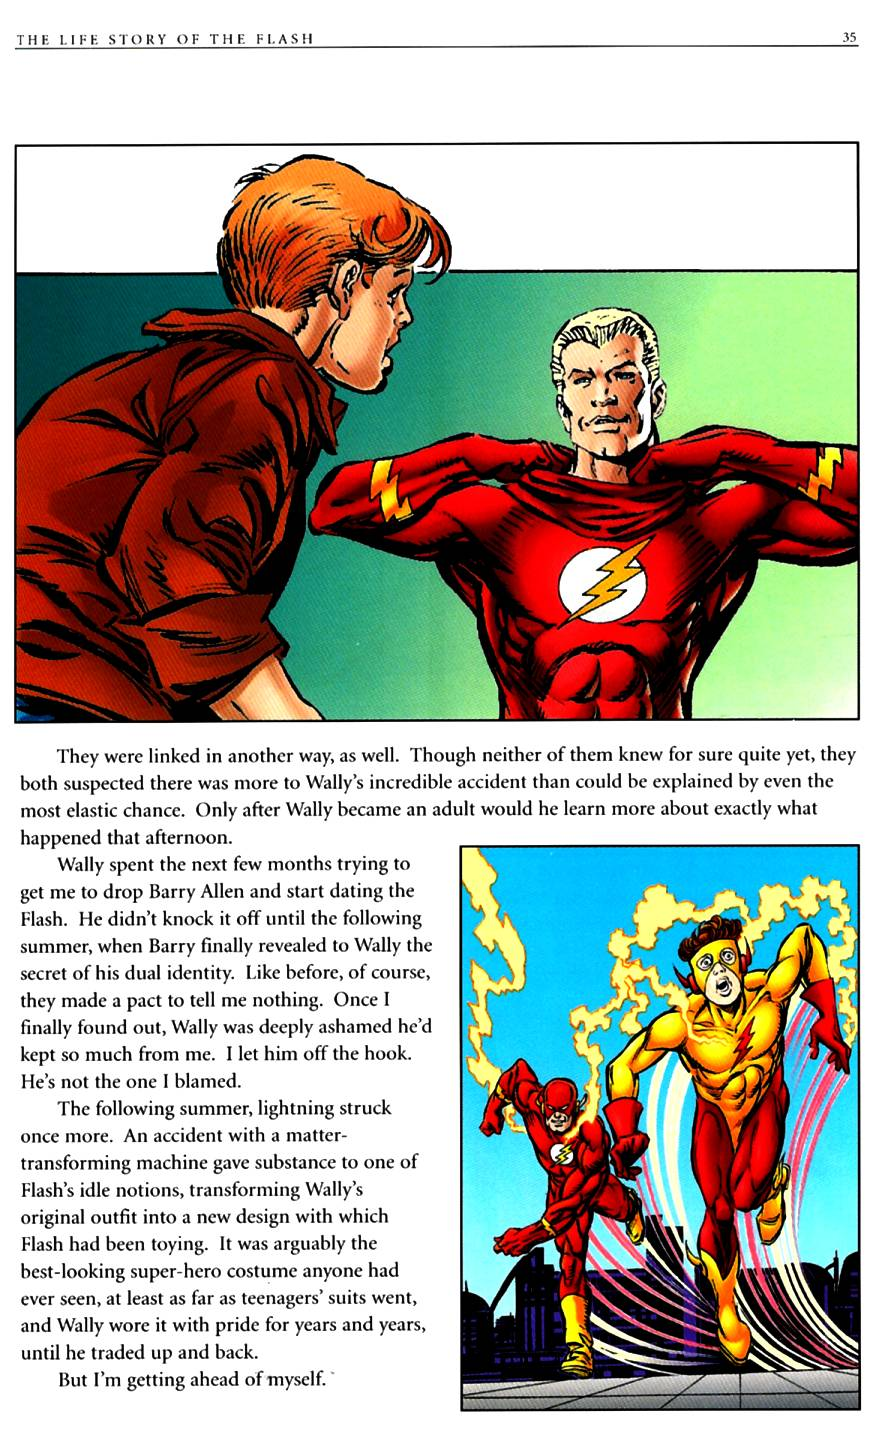 Read online The Life Story of the Flash comic -  Issue # Full - 37